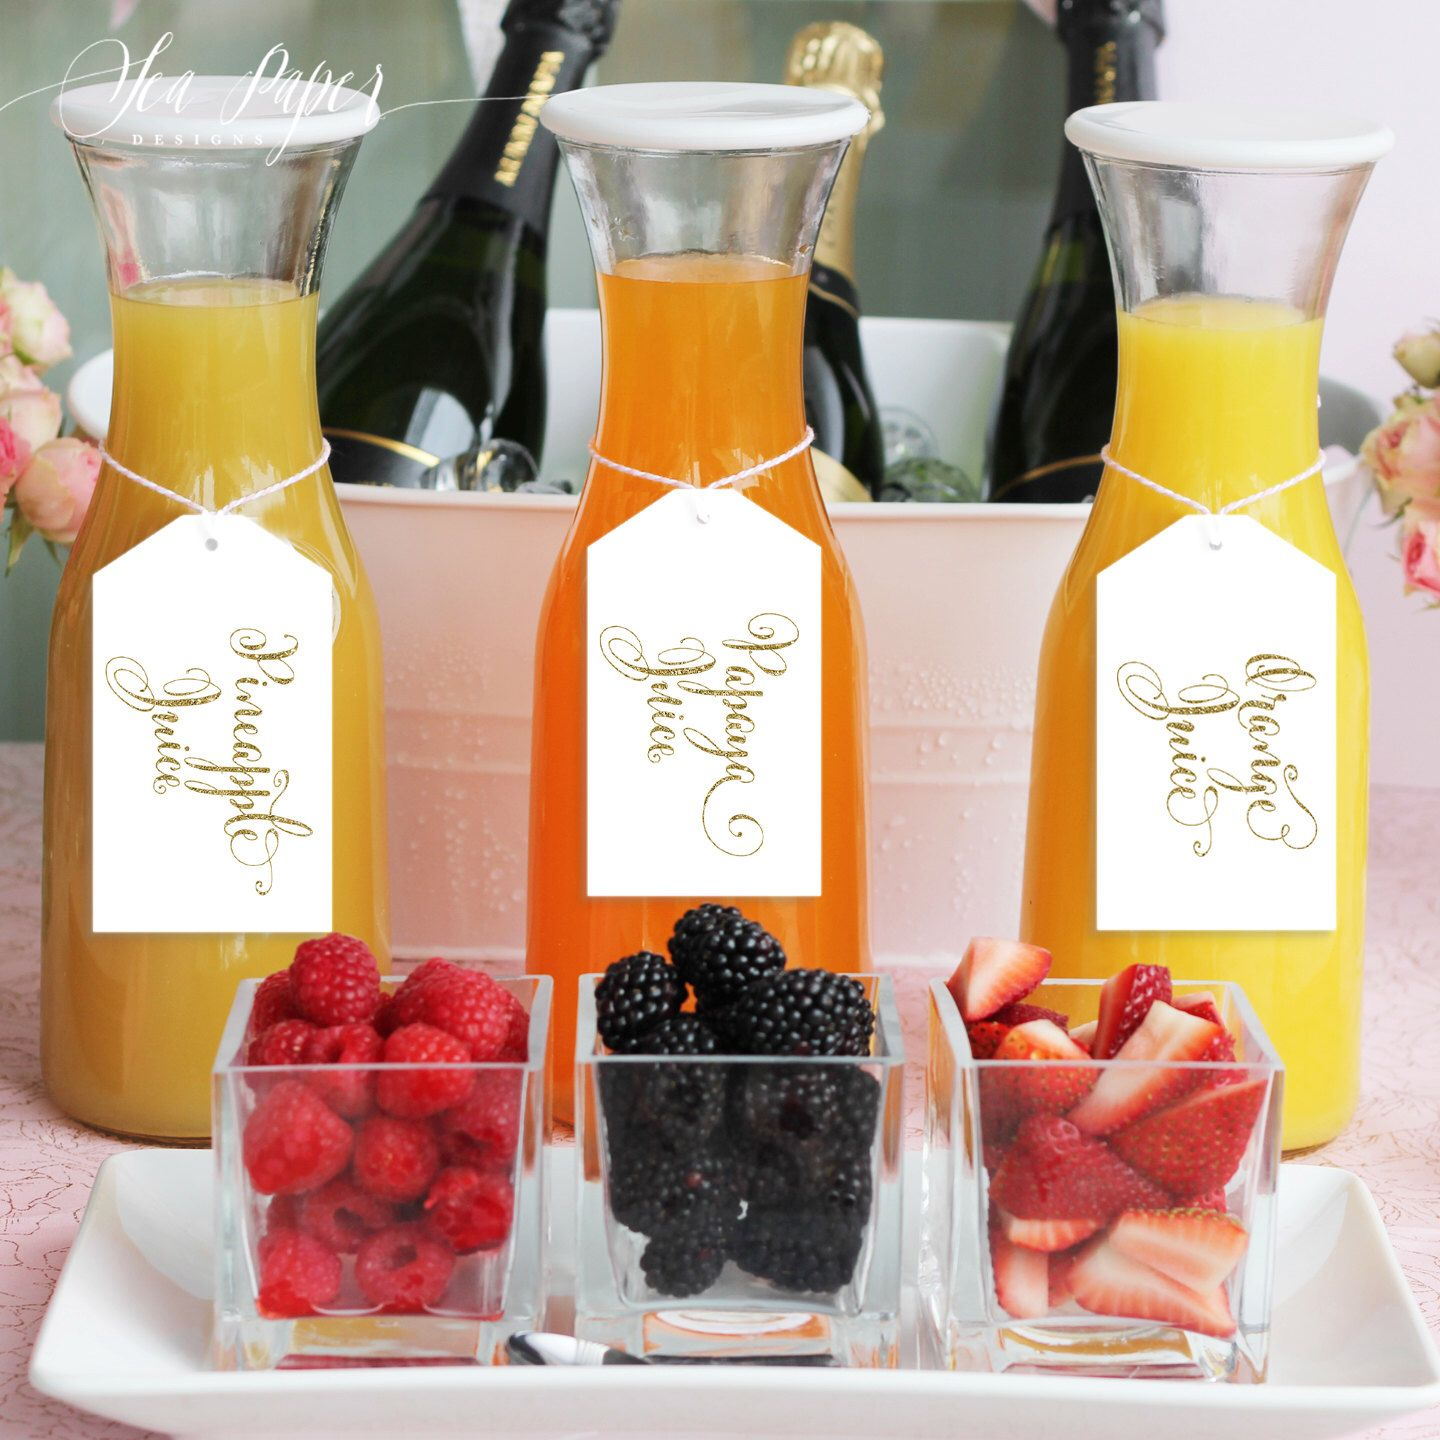 Mimosa Bar Juice Drink Tags Mimosa Bar Labels For Bubbly Champagne Bars At Bridal Shower Wedding Party White Gold Glitter Mia Champagne Brunch Birthday Brunch Bubbly Bar